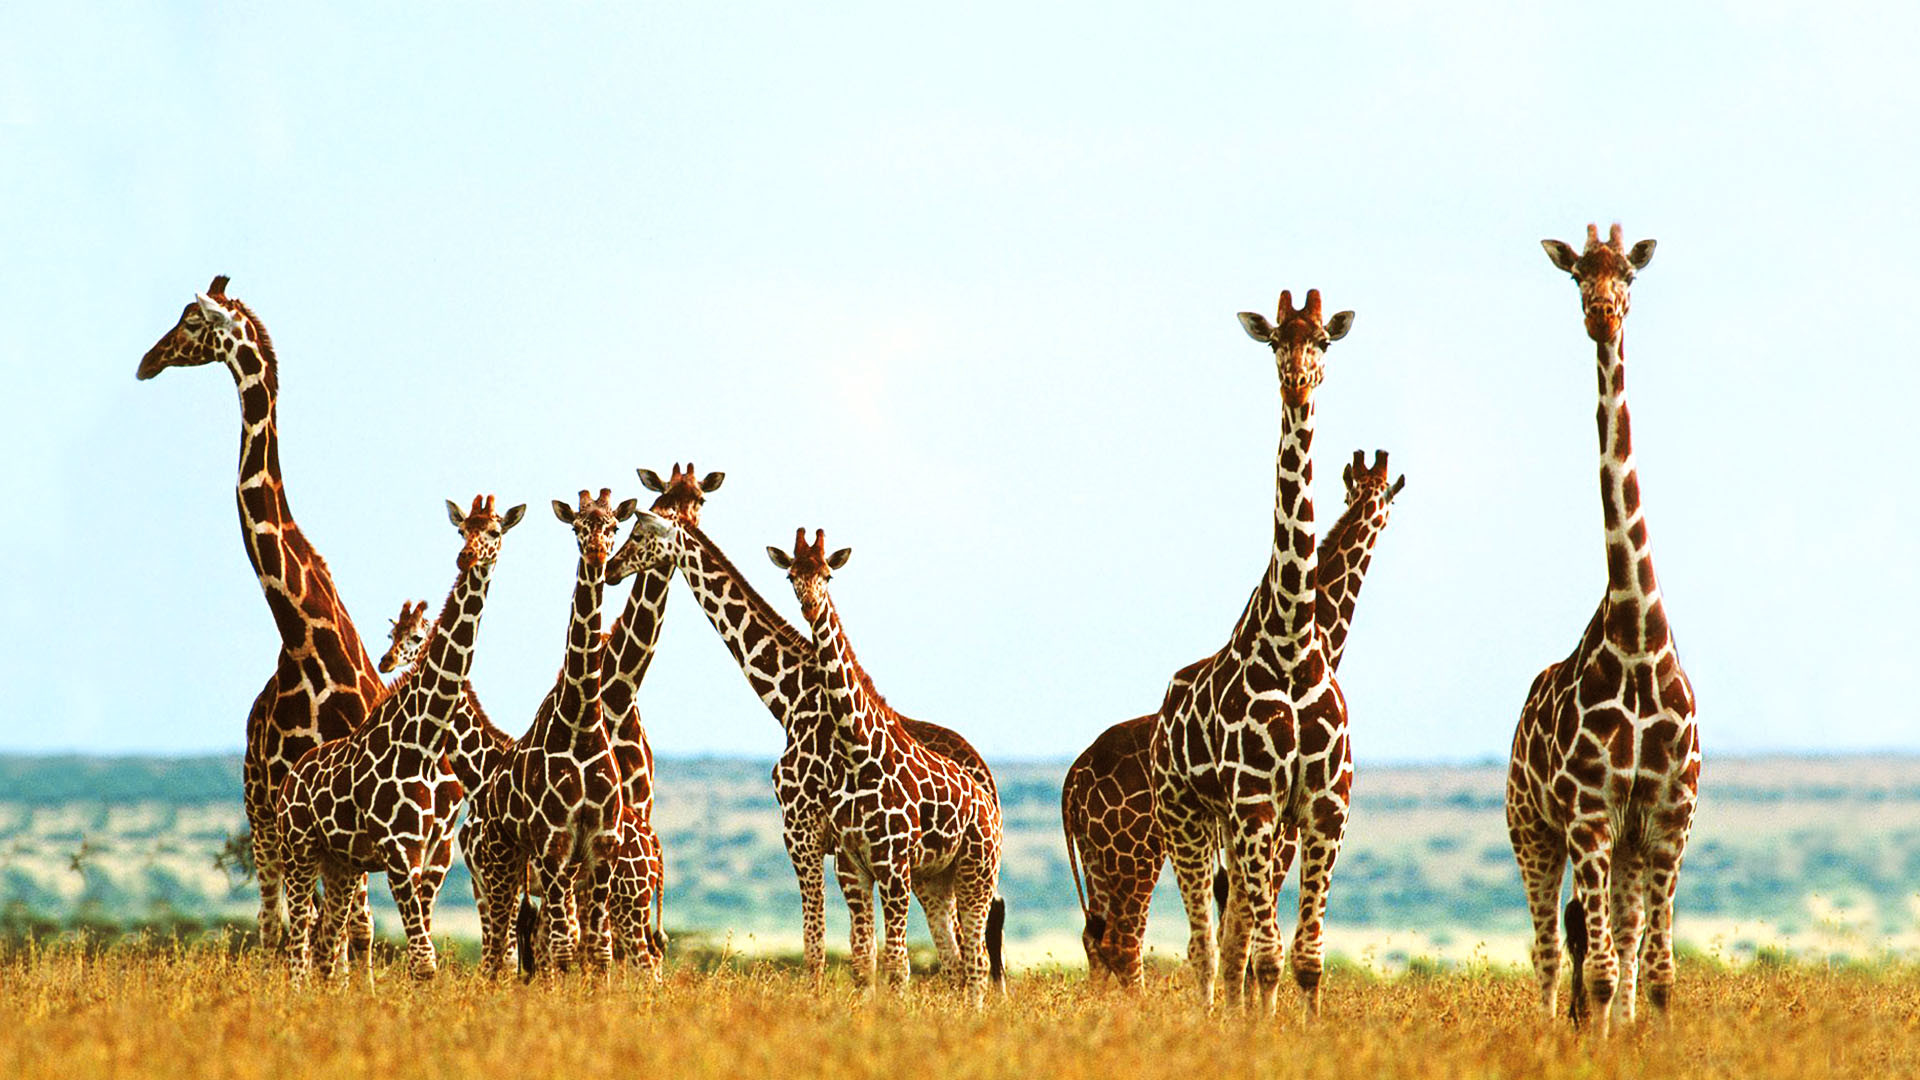 Best Wallpaper Colorful Giraffe - 722612-free-download-giraffes-wallpapers-1920x1080-for-android-40  Image_469440 .jpg